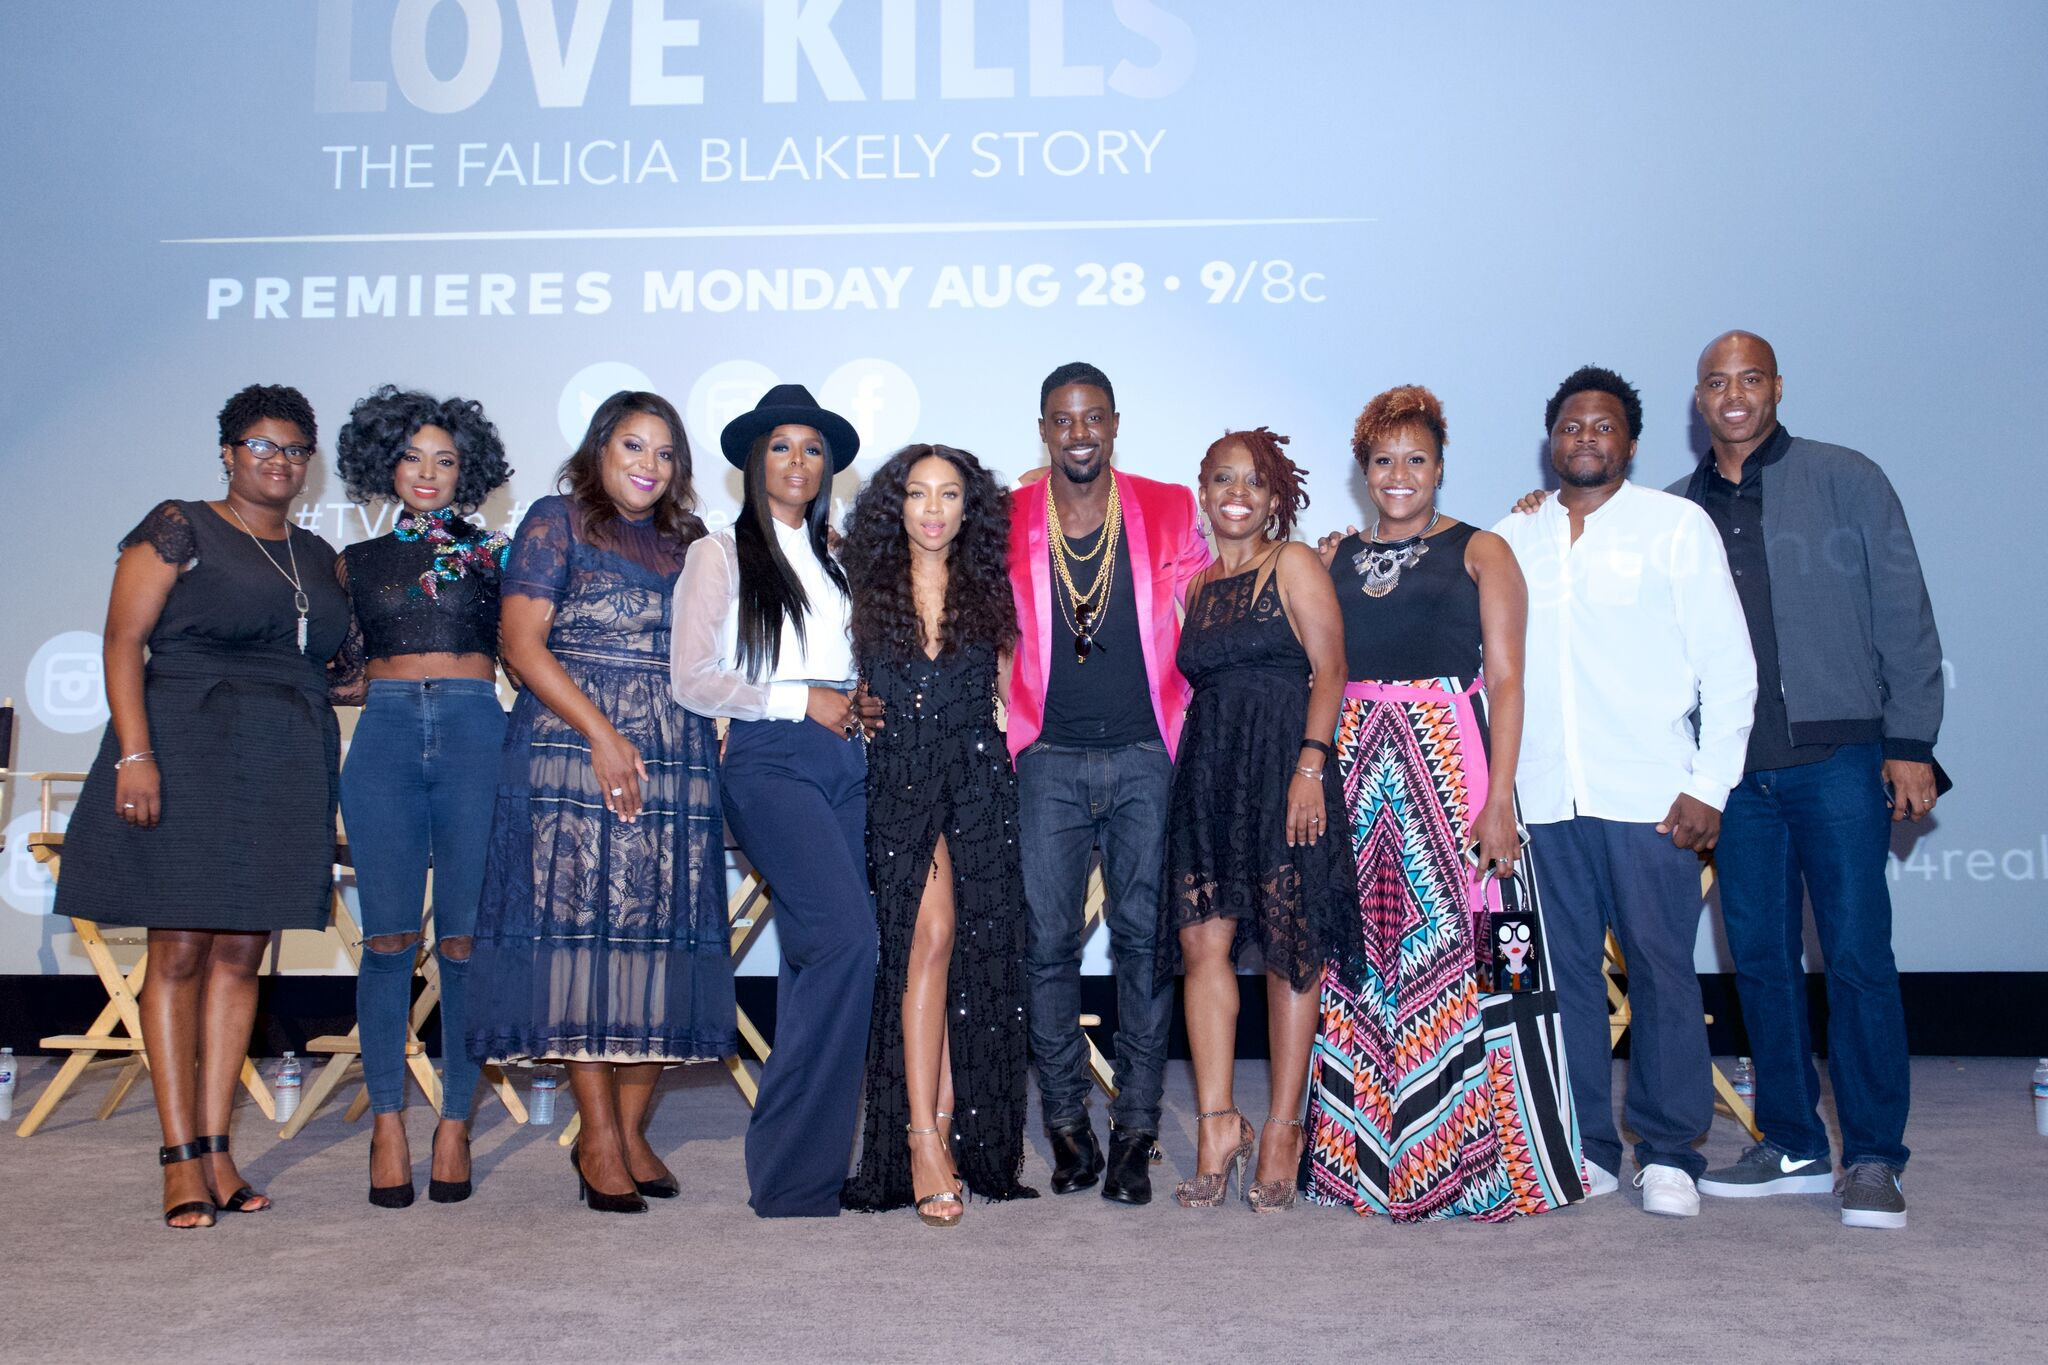 cast, directors and producers with Kevin Fraizer.jpg